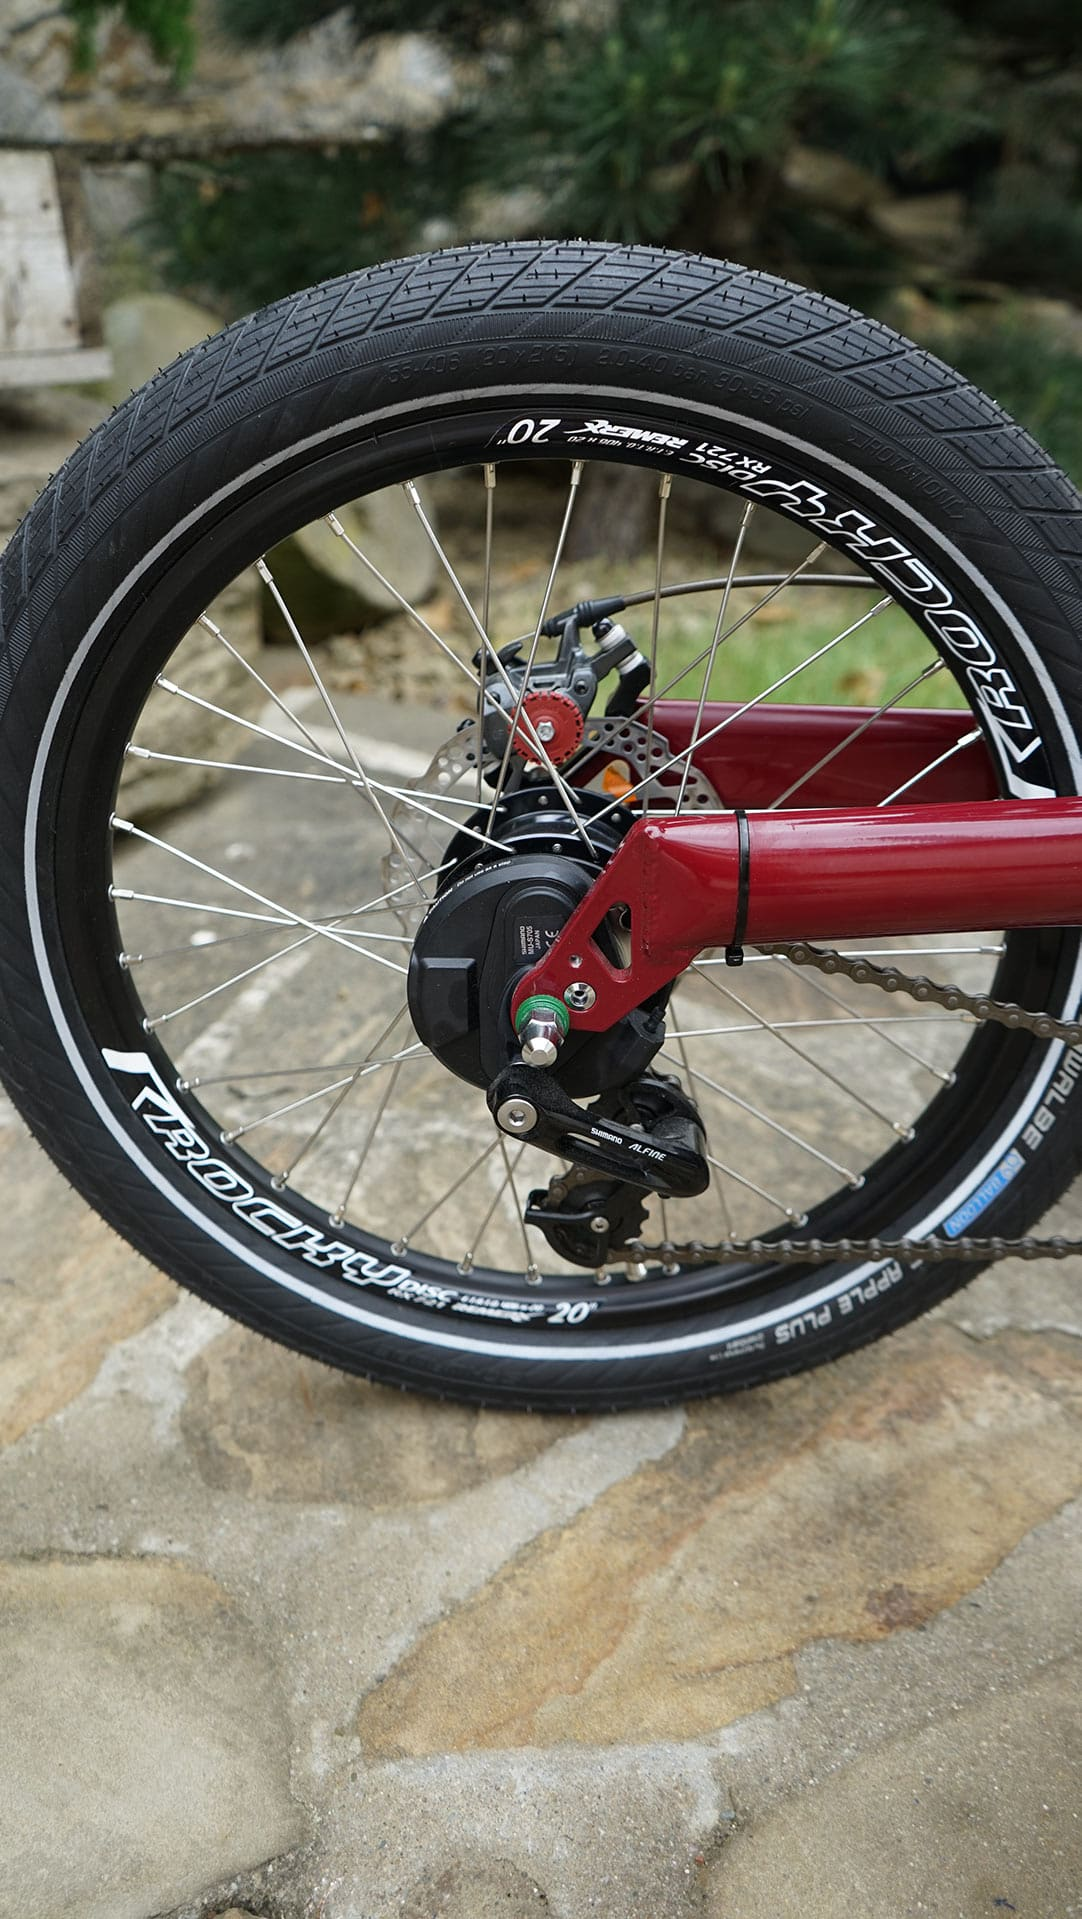 azub_tricon20_recumbent-trike_shimano-alfine_disabled-modification_006